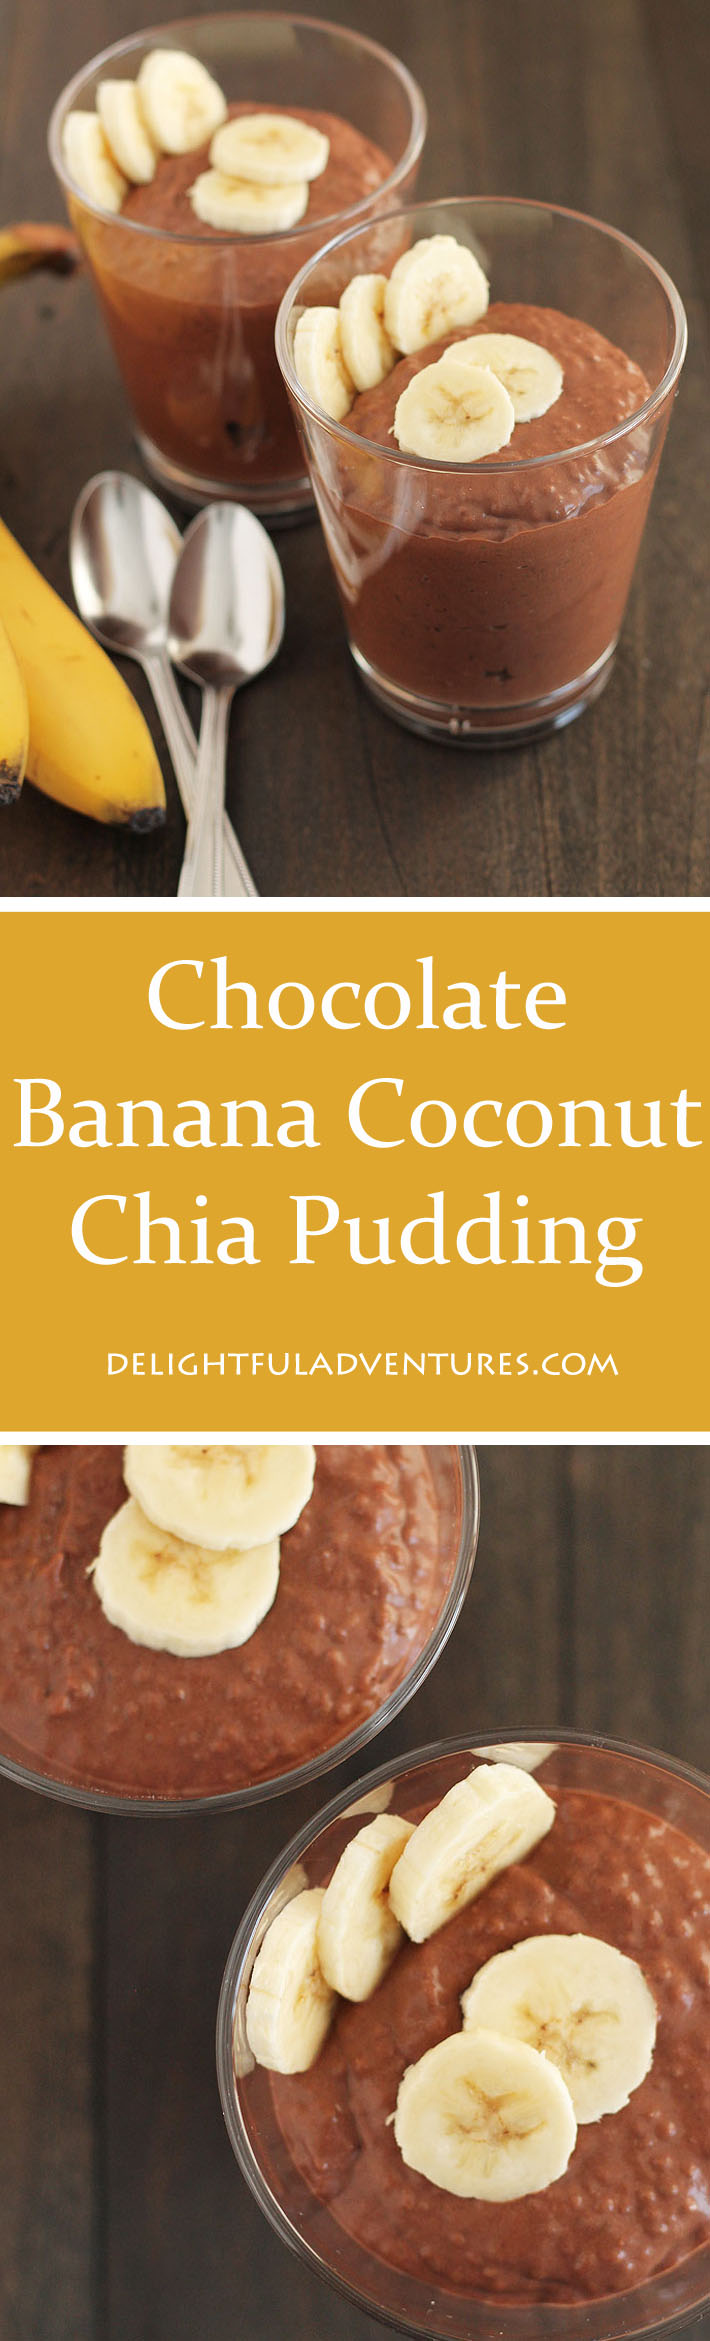 Whip up this delicious vegan & gluten free Chocolate Banana Coconut Chia Pudding in the evening and it will be ready for breakfast or snacks the next day. #chiapudding #veganglutenfree #glutenfreevegan #veganbreakfast #vegansnacks